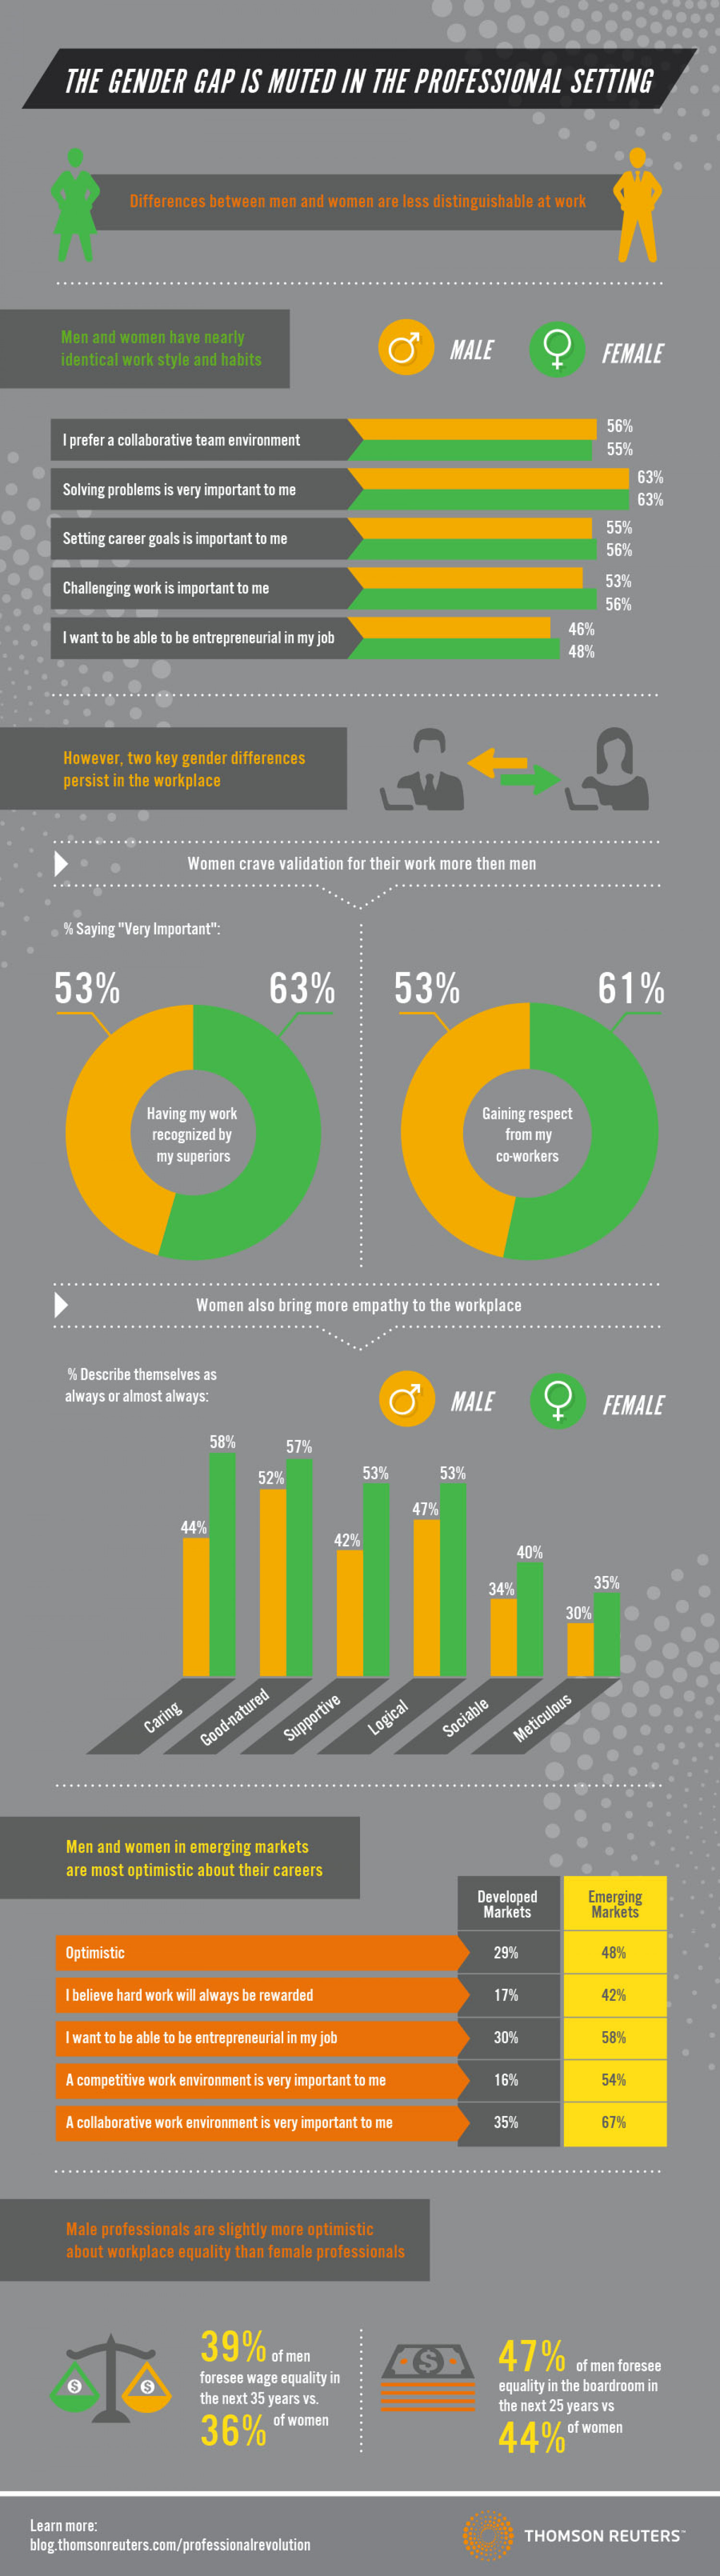 The Gender Gap is Muted in the Professional Setting Infographic